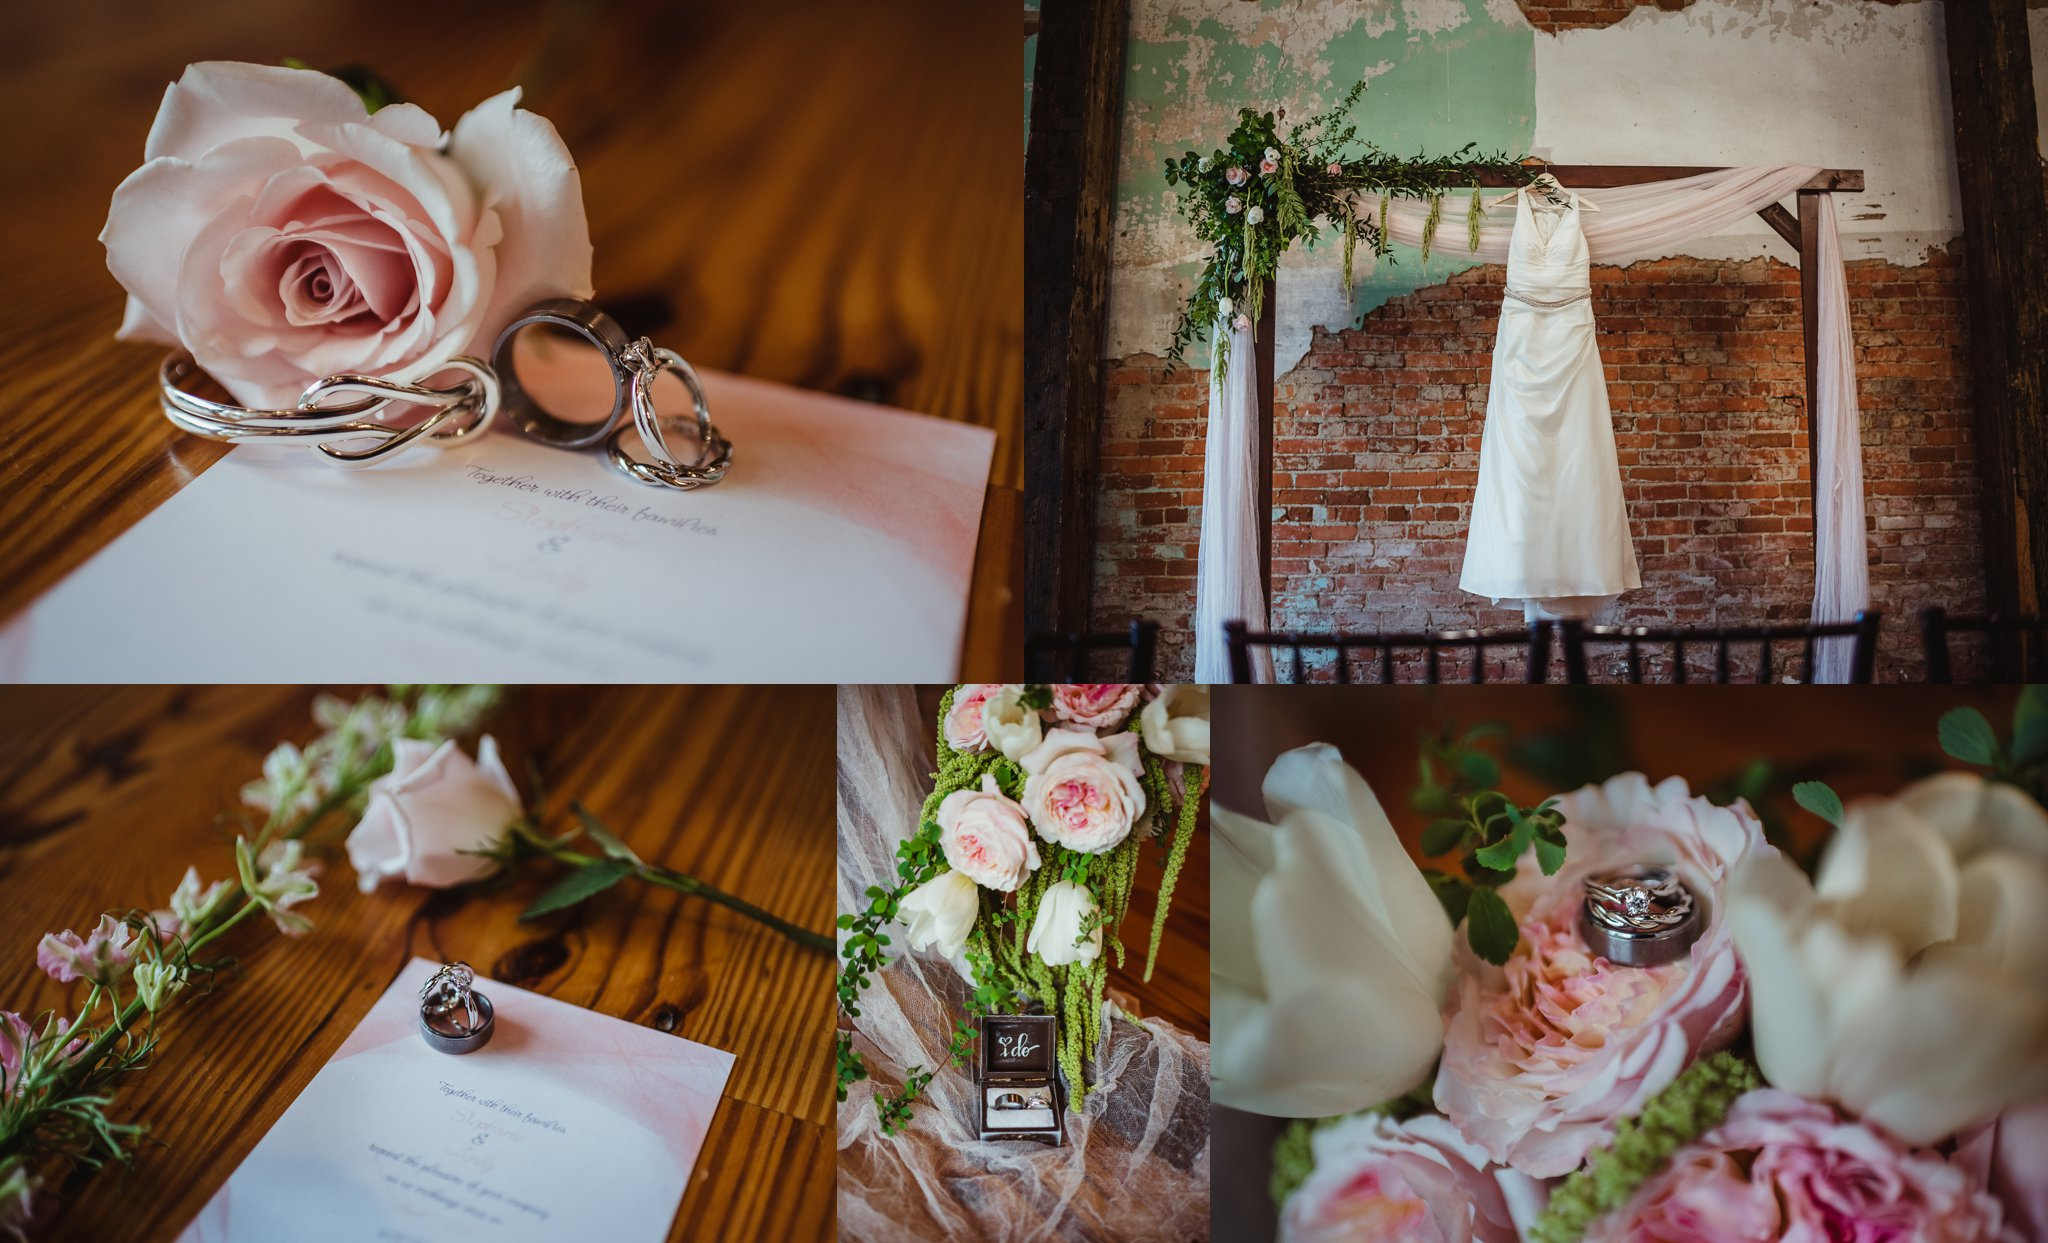 Wedding details taken by Rose Trail Images include the wedding rings, peach roses, their pink and white invitation, and the wedding dress hanging from the archway at Cross and Main.